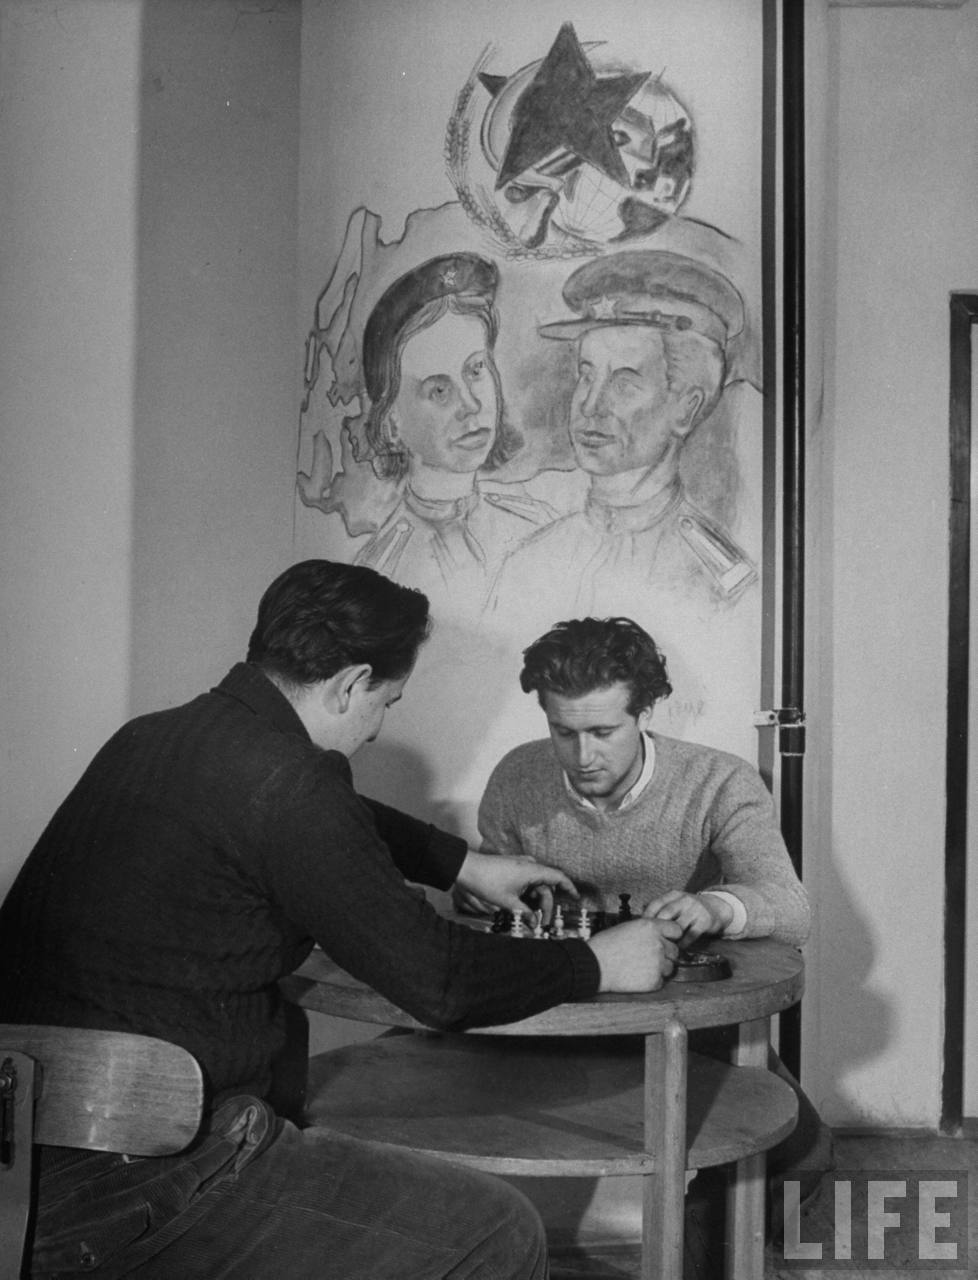 Two Czech students playing chess under student artwork on wall of room in the Marshal Tito Hall at Charles University.